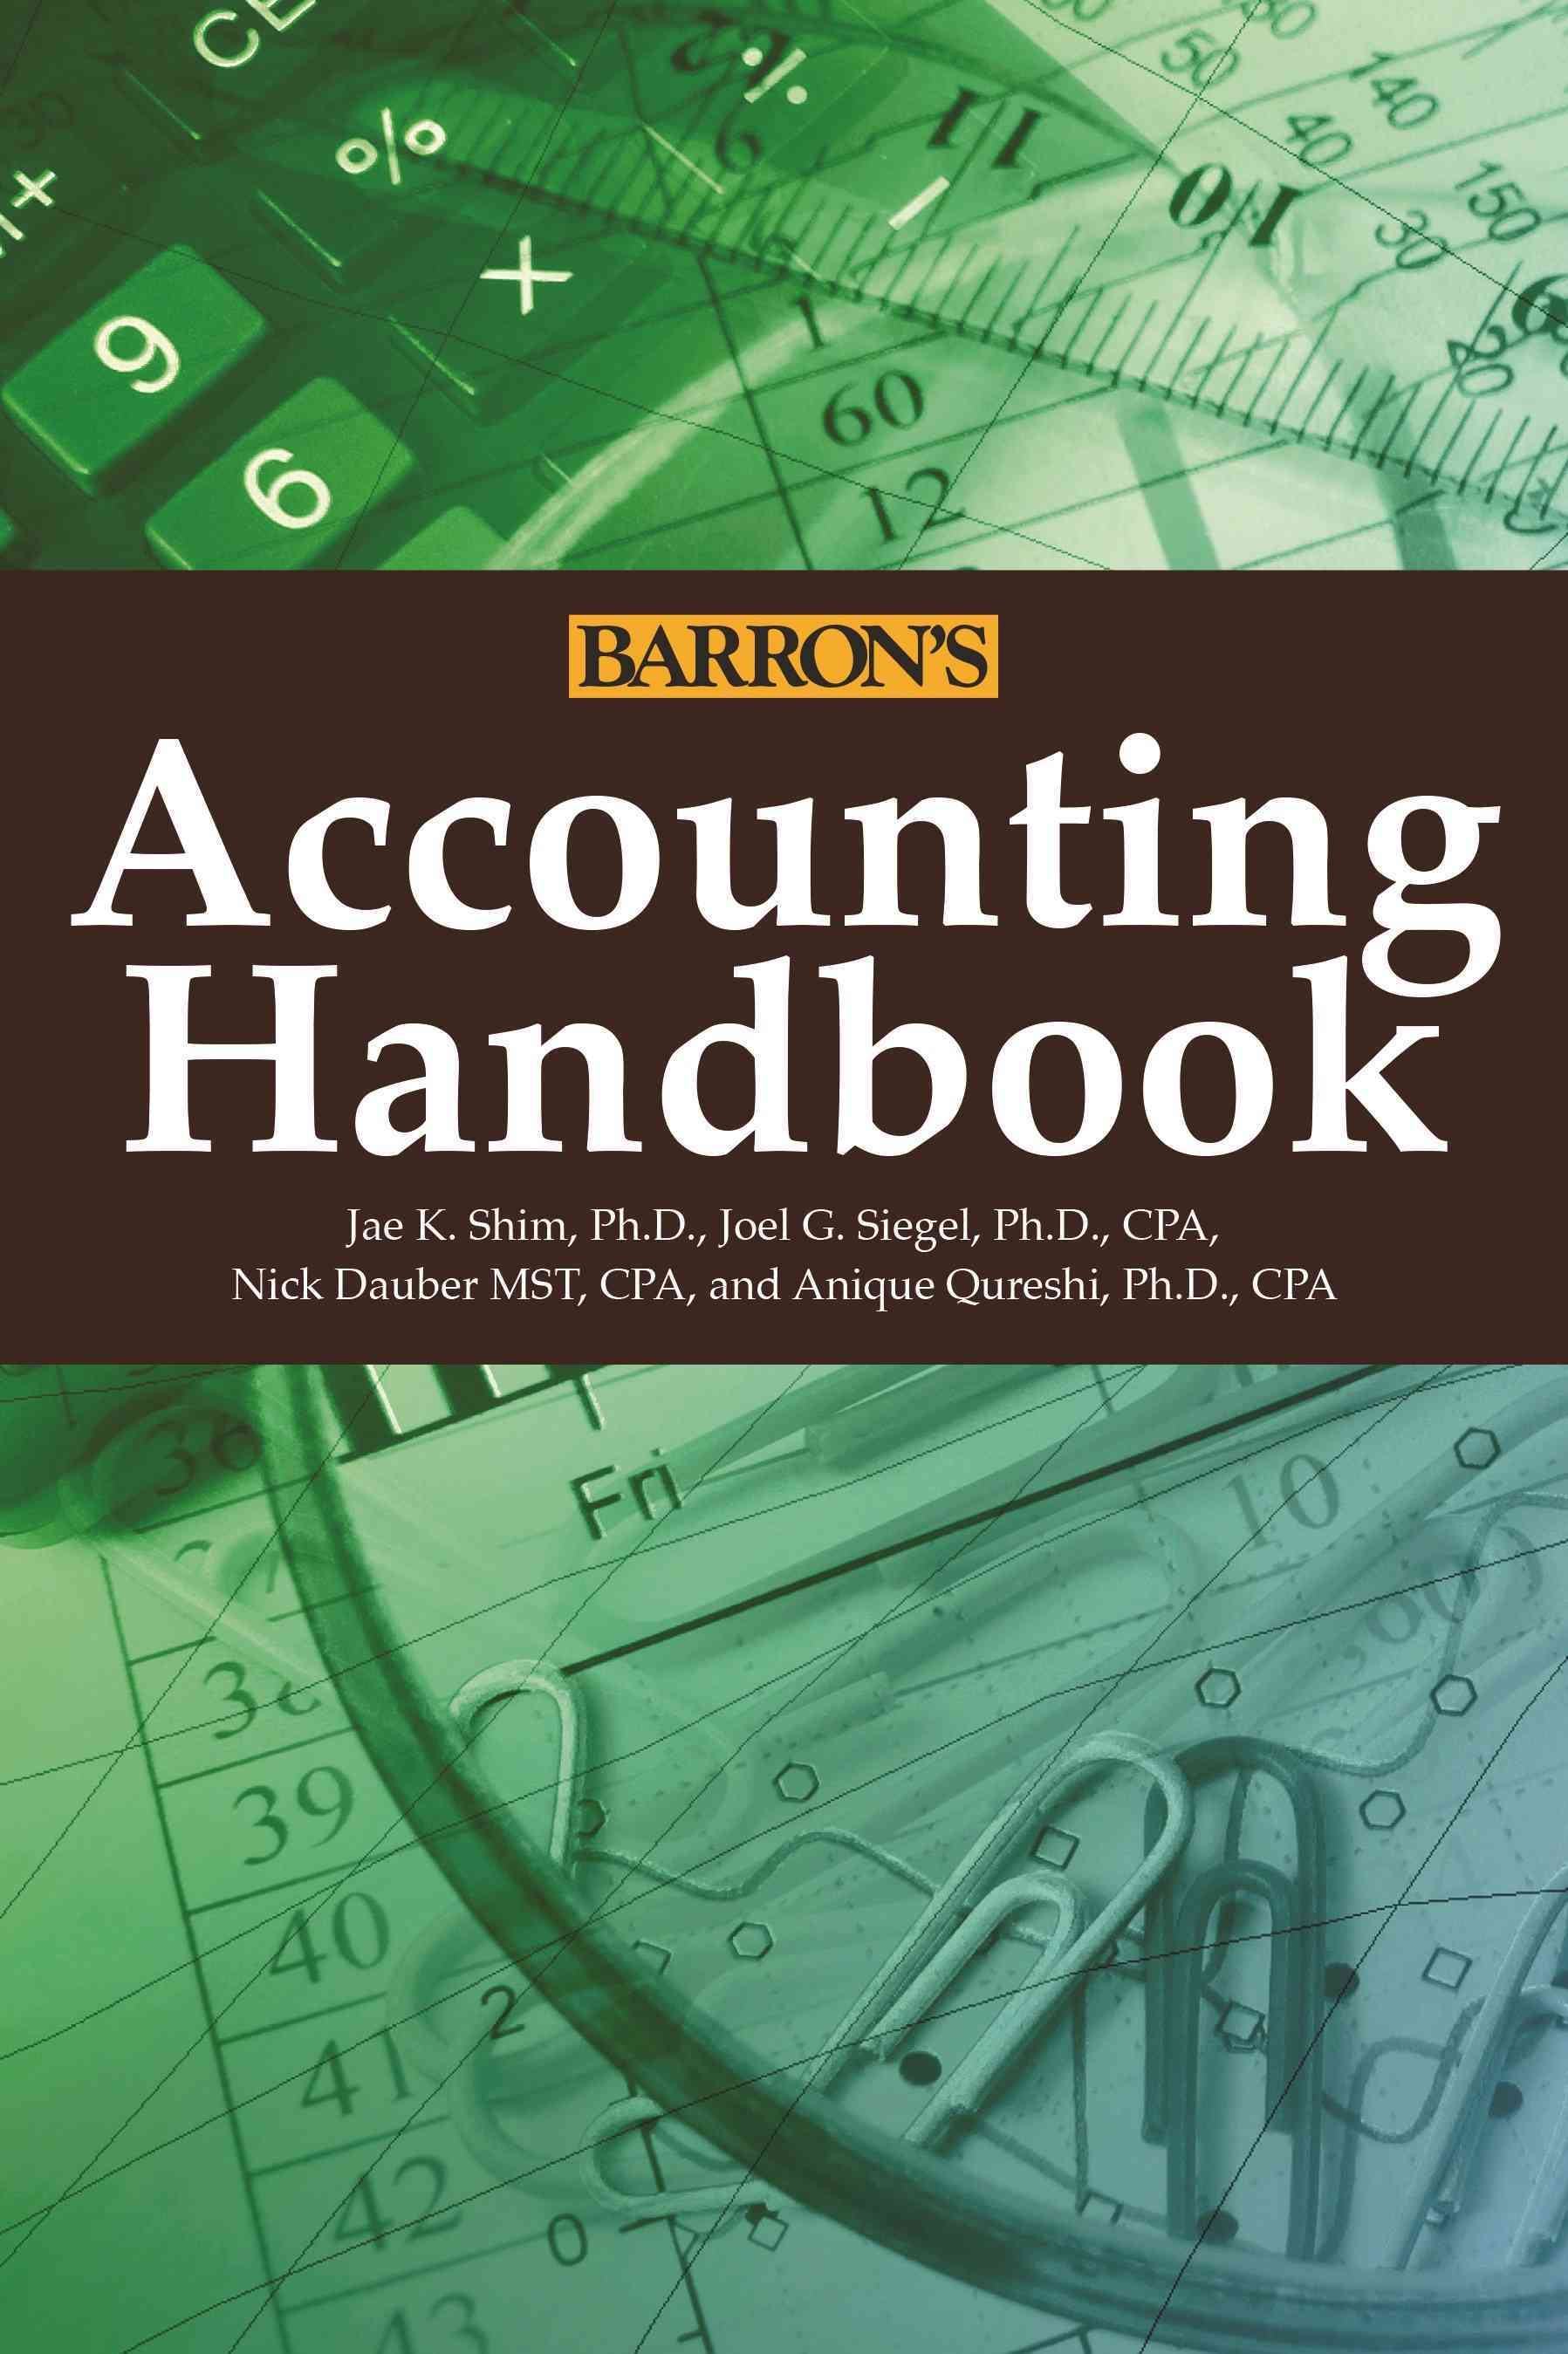 Accounting Handbook By Shim, Jae K./ Siegel, Joel G., Ph.D./ Dauber, Nick/ Qureshi, Anique, Ph.d.